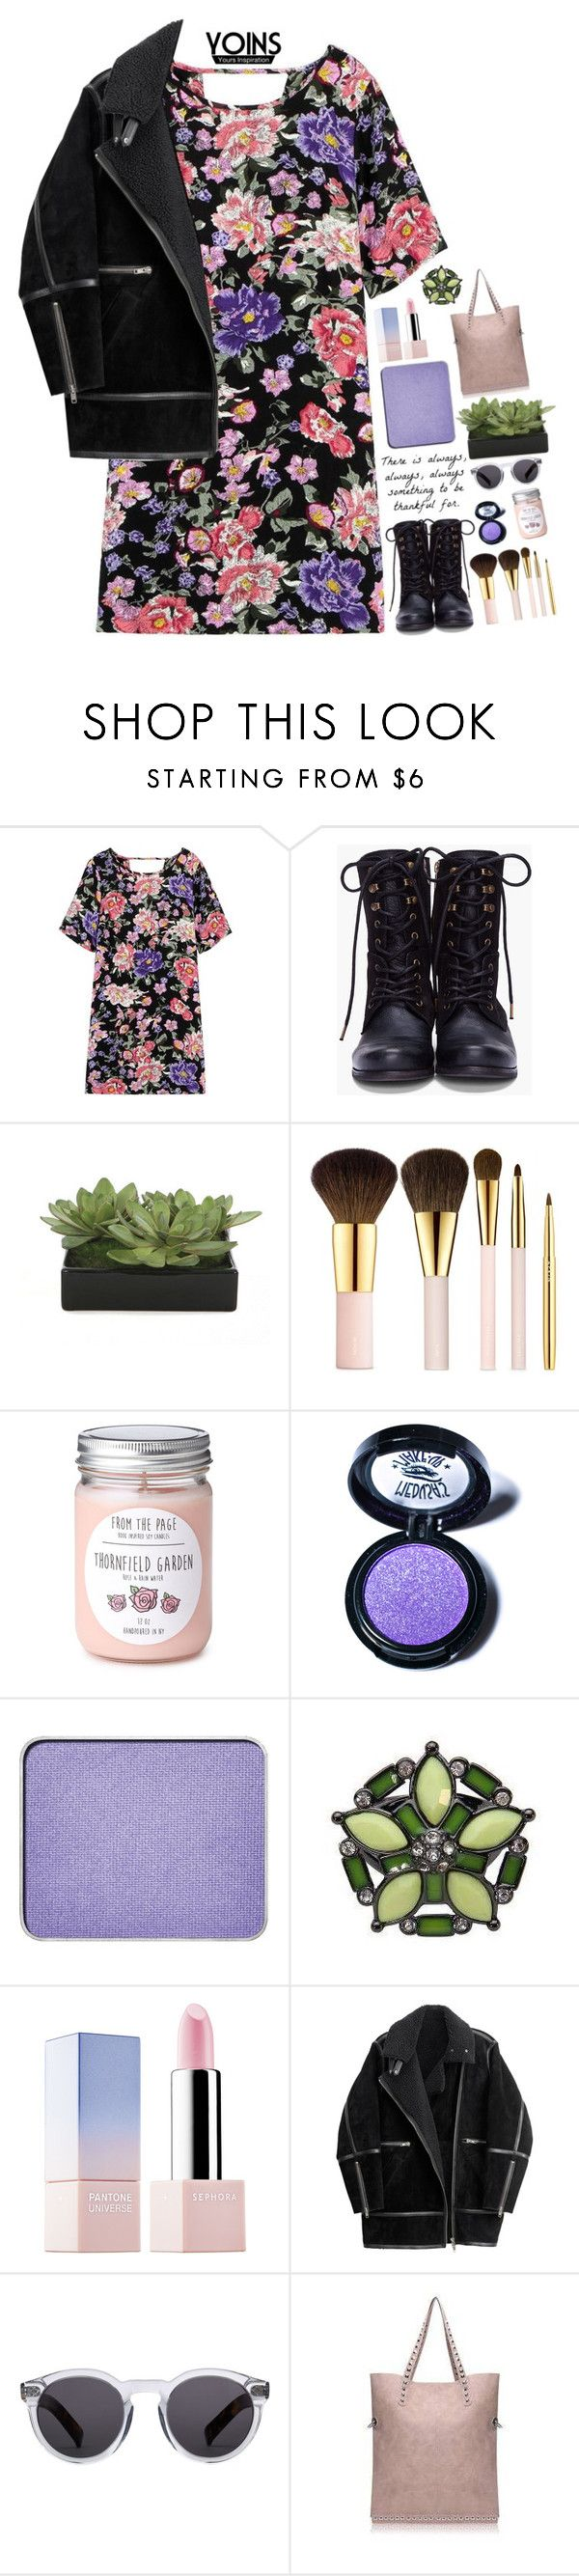 """""""Yoins III"""" by amethyst0818 ❤ liked on Polyvore featuring Diesel, Lux-Art Silks, AERIN, Medusa's Makeup, shu uemura, Sephora Collection, H&M, Illesteva, women's clothing and women's fashion"""